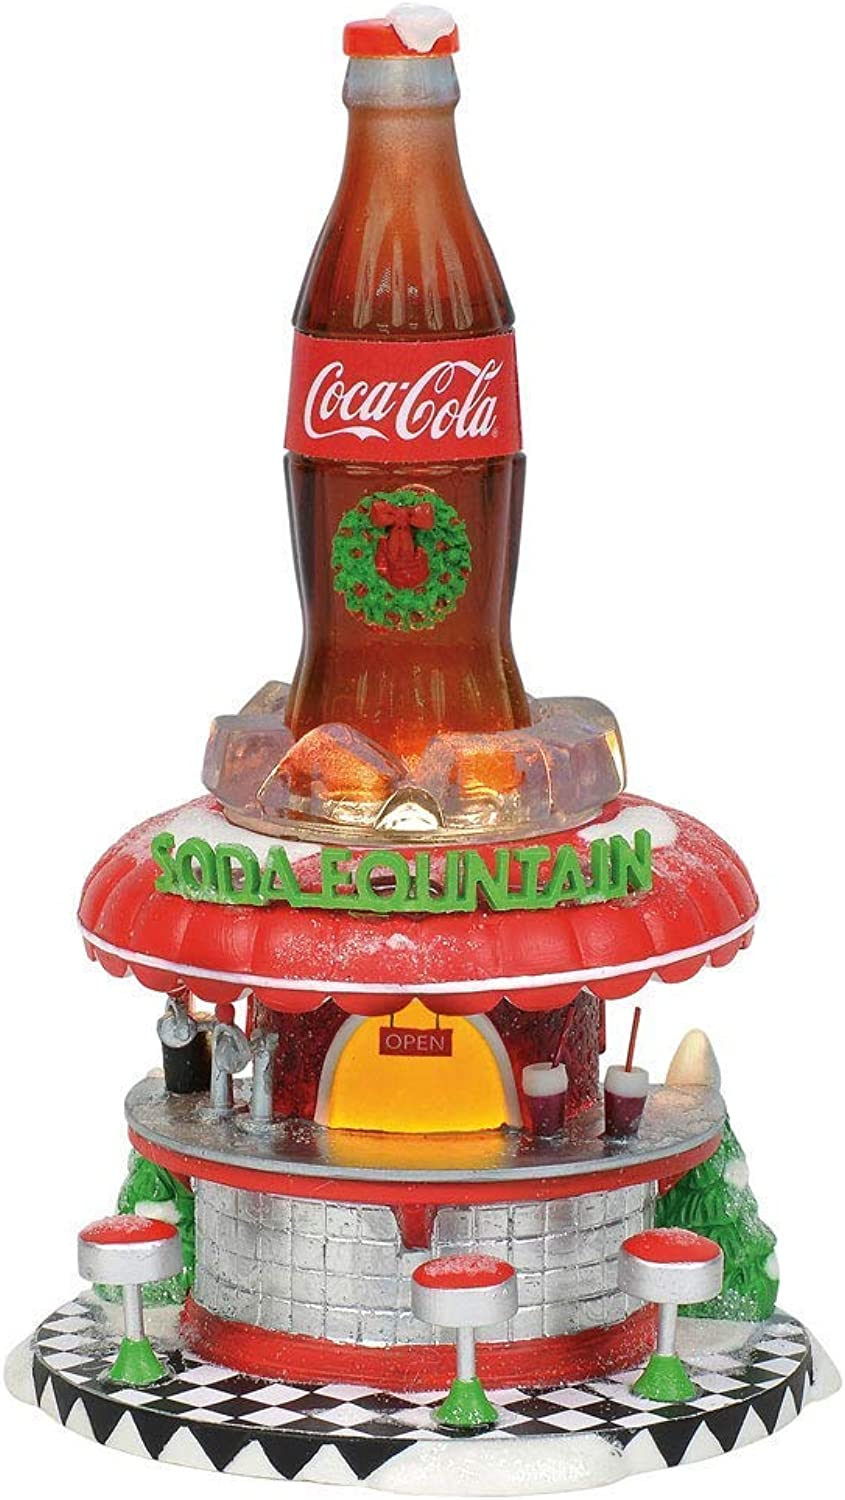 Department56 Department 56 Coca Cola Soda Fountain Porcelain Collectible Figurines (6002293)